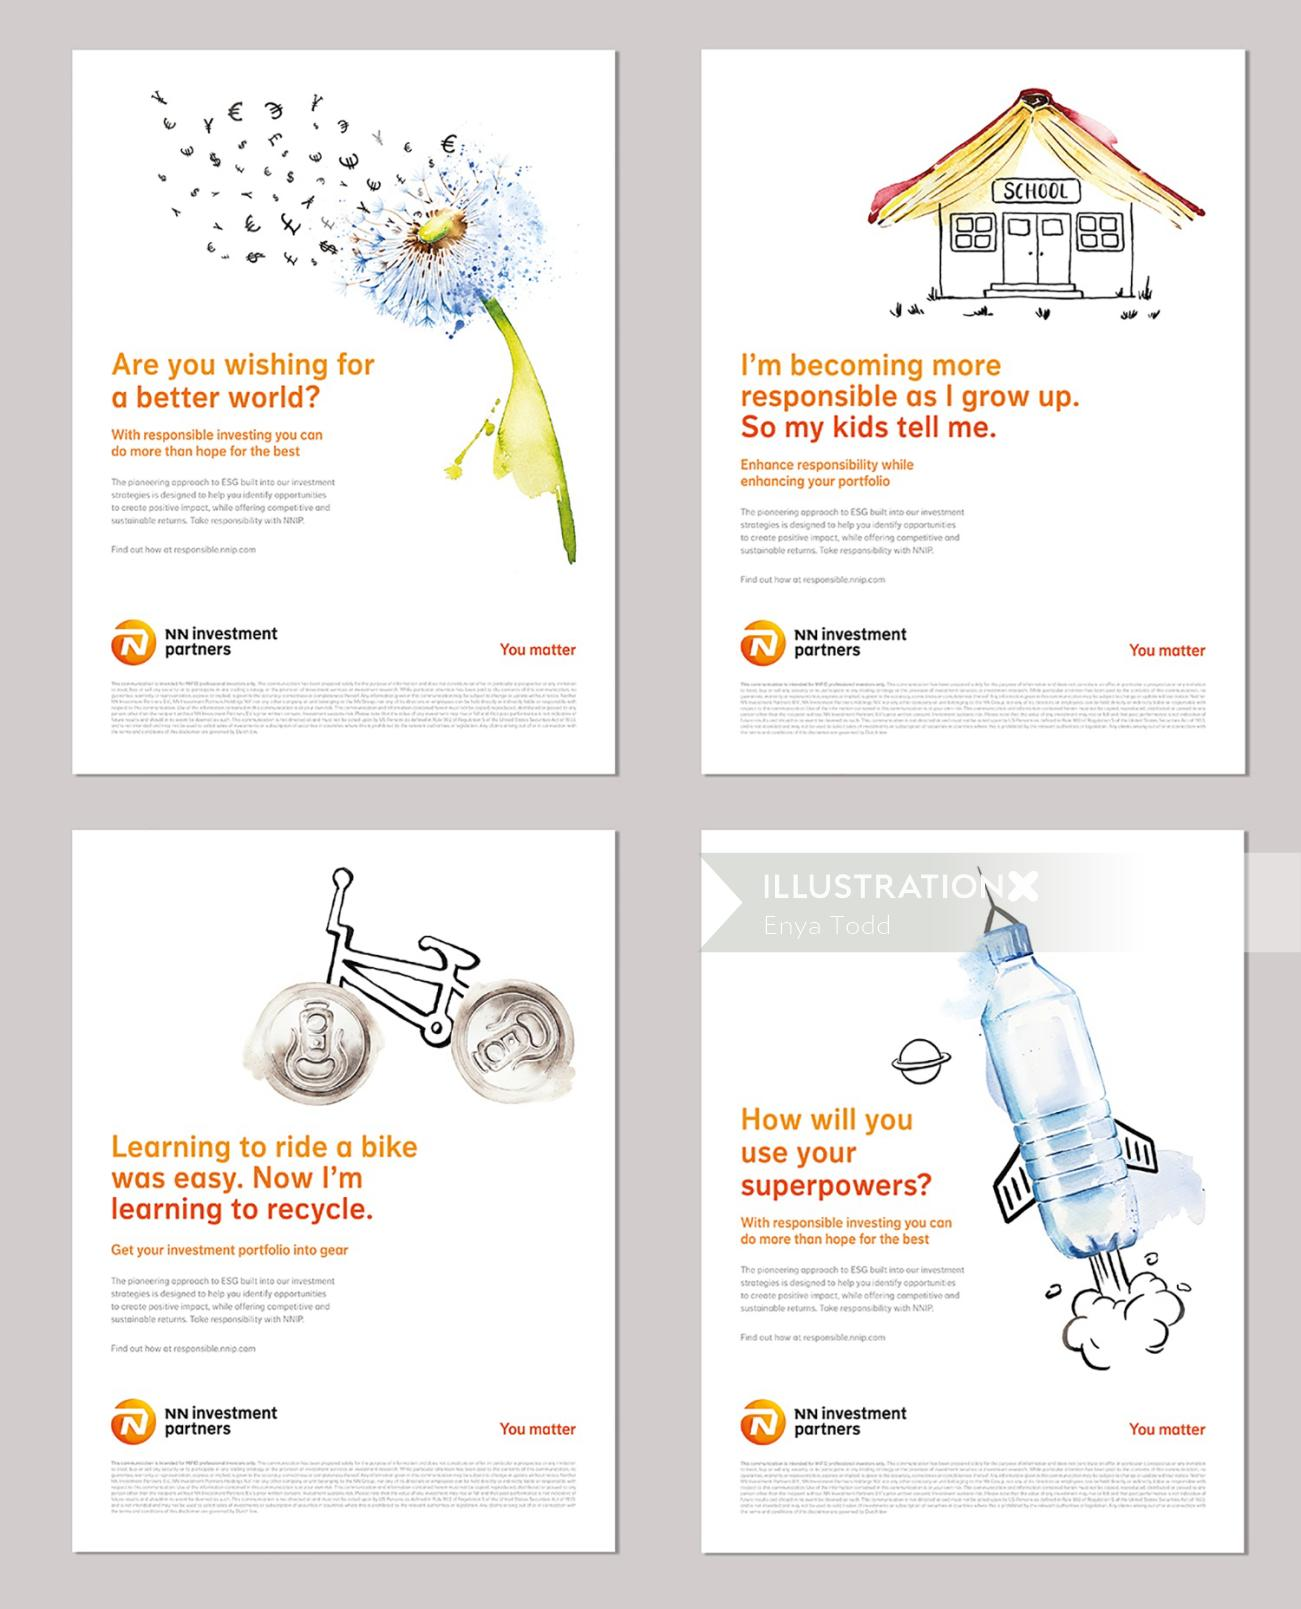 Influencing change campaign for The Netherlands based company (NNIP)